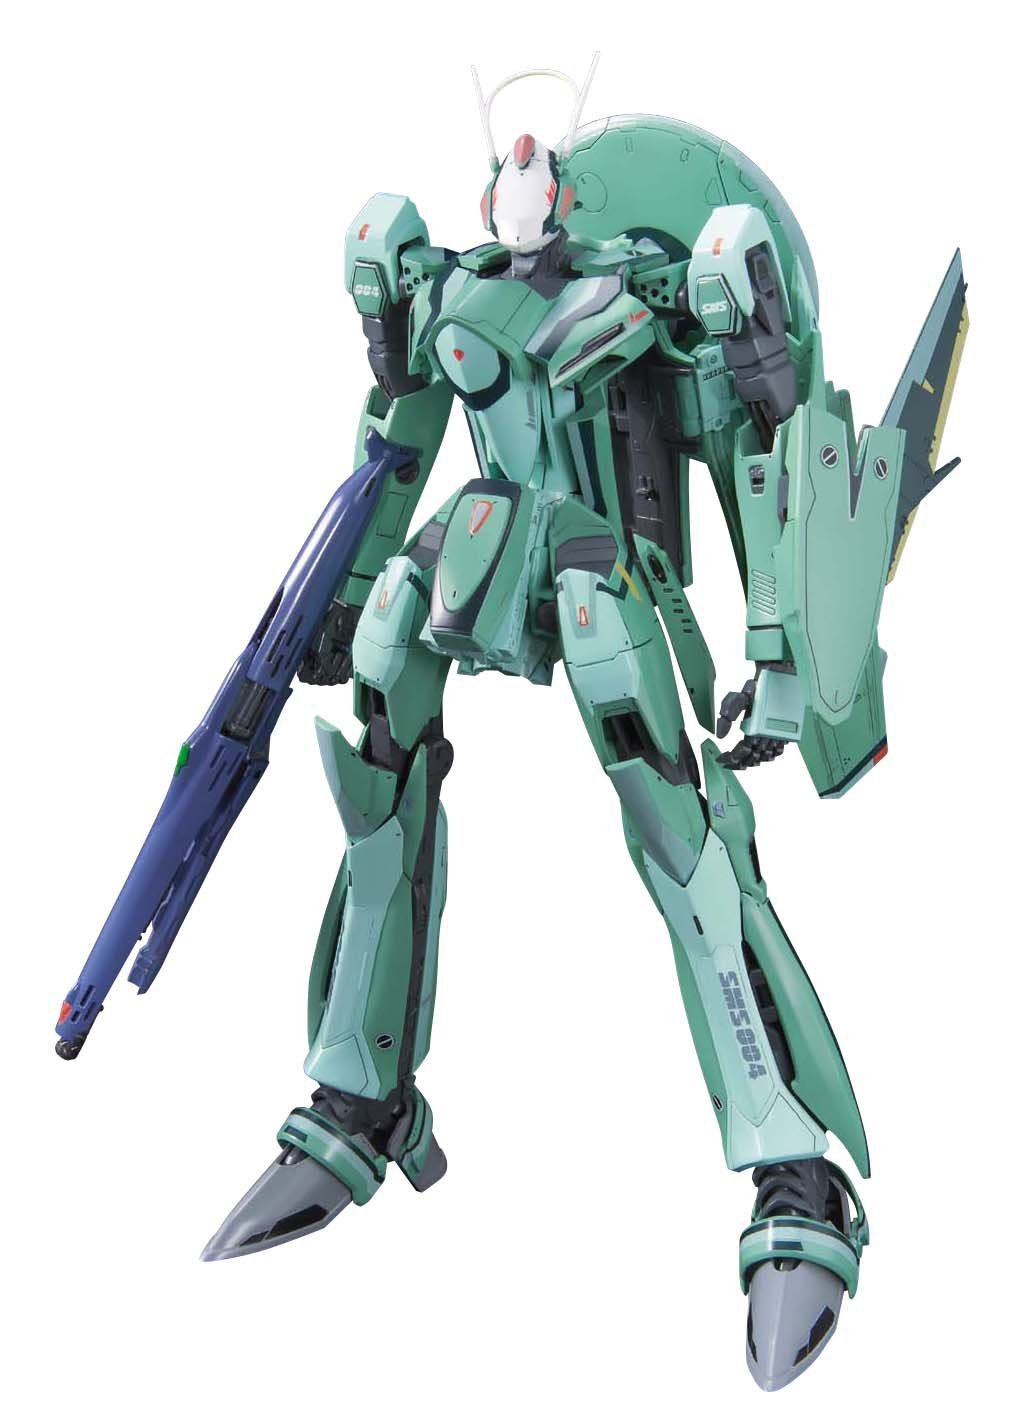 New Bandai Macross Messiah Valkyrie Luca with Ghost 1/72 scale Kit from Japan